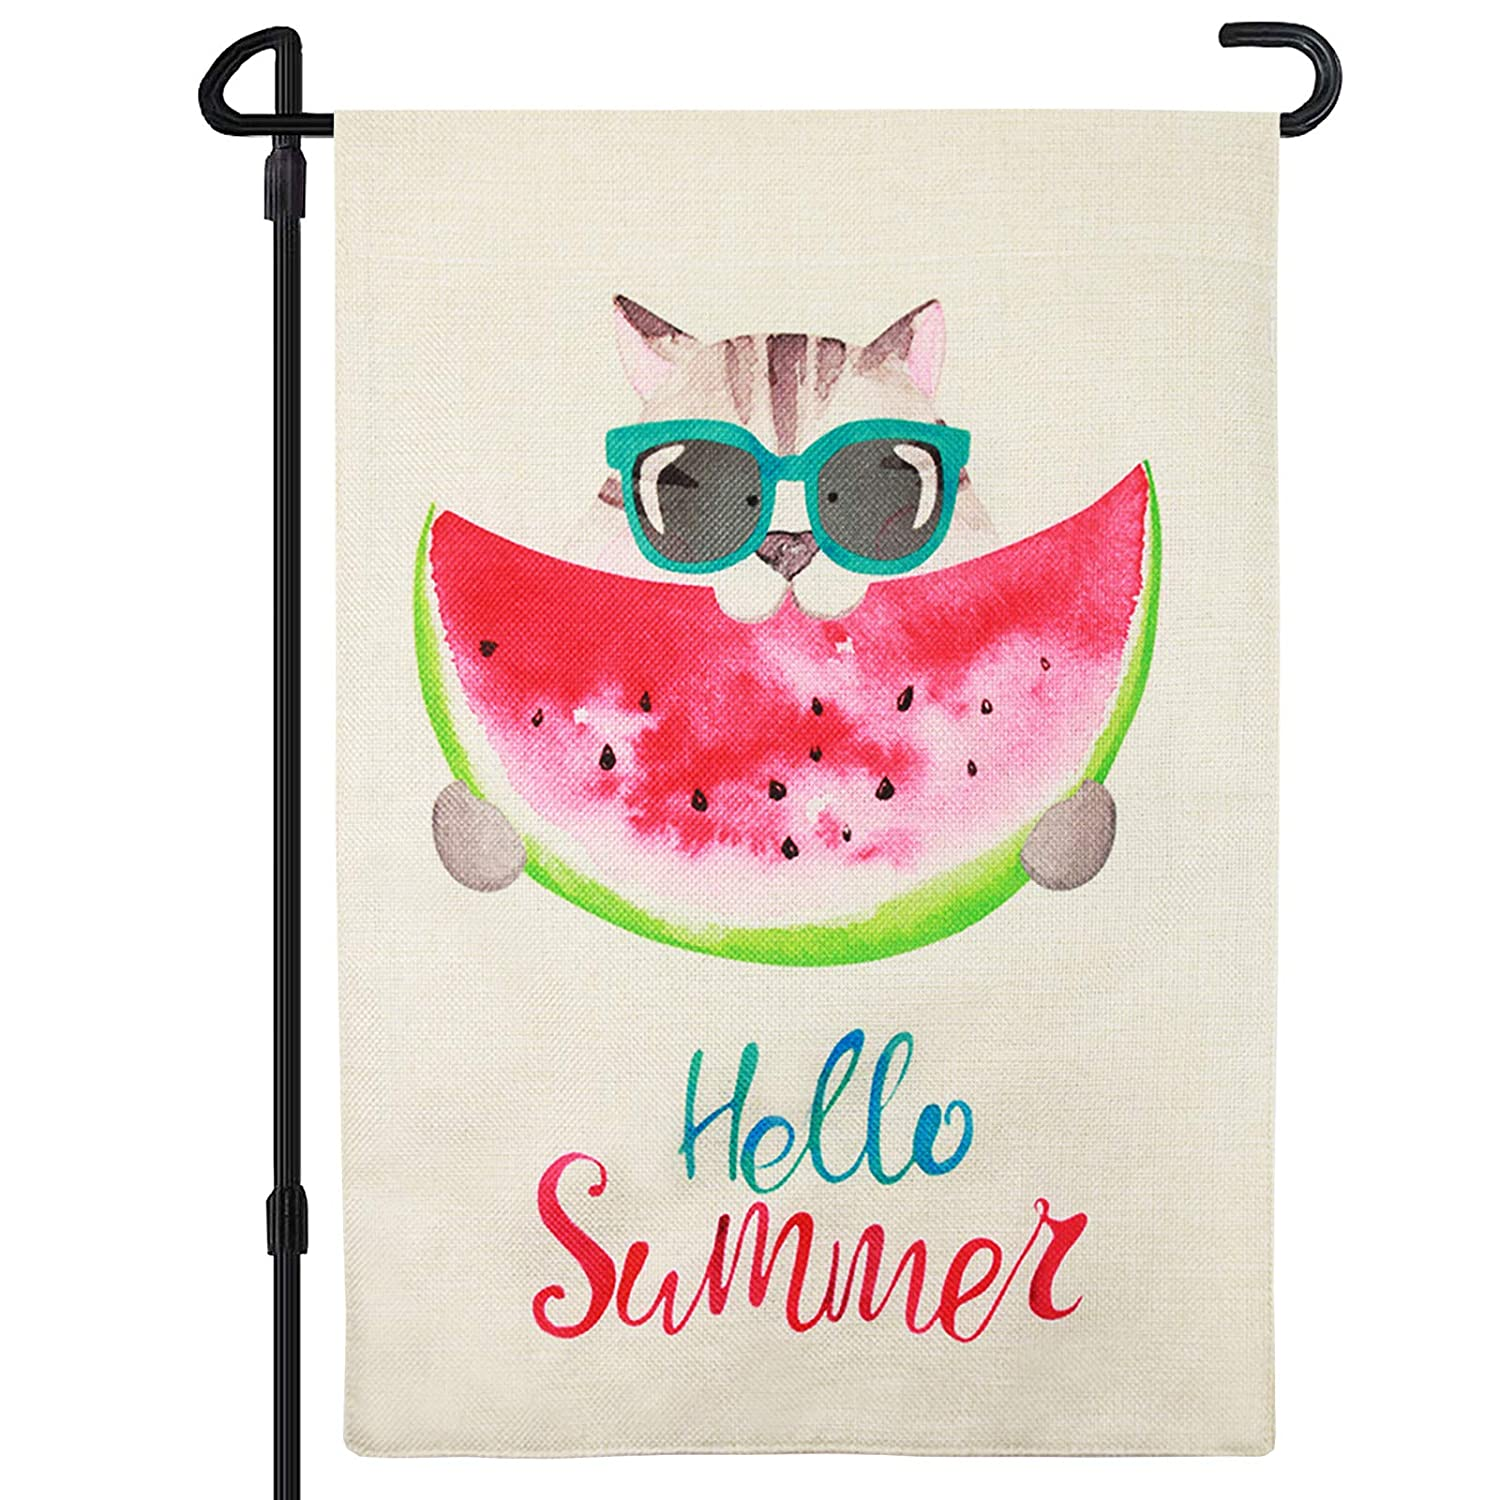 DOSEN HOFUL Small Welcome Summer Garden Flags Decor For Outside 12x18 Double Sided Dilei Cat Hello Funny Yard flags Decorative House Garden Flag Burlap Seasonal Happy Holidays Lawn